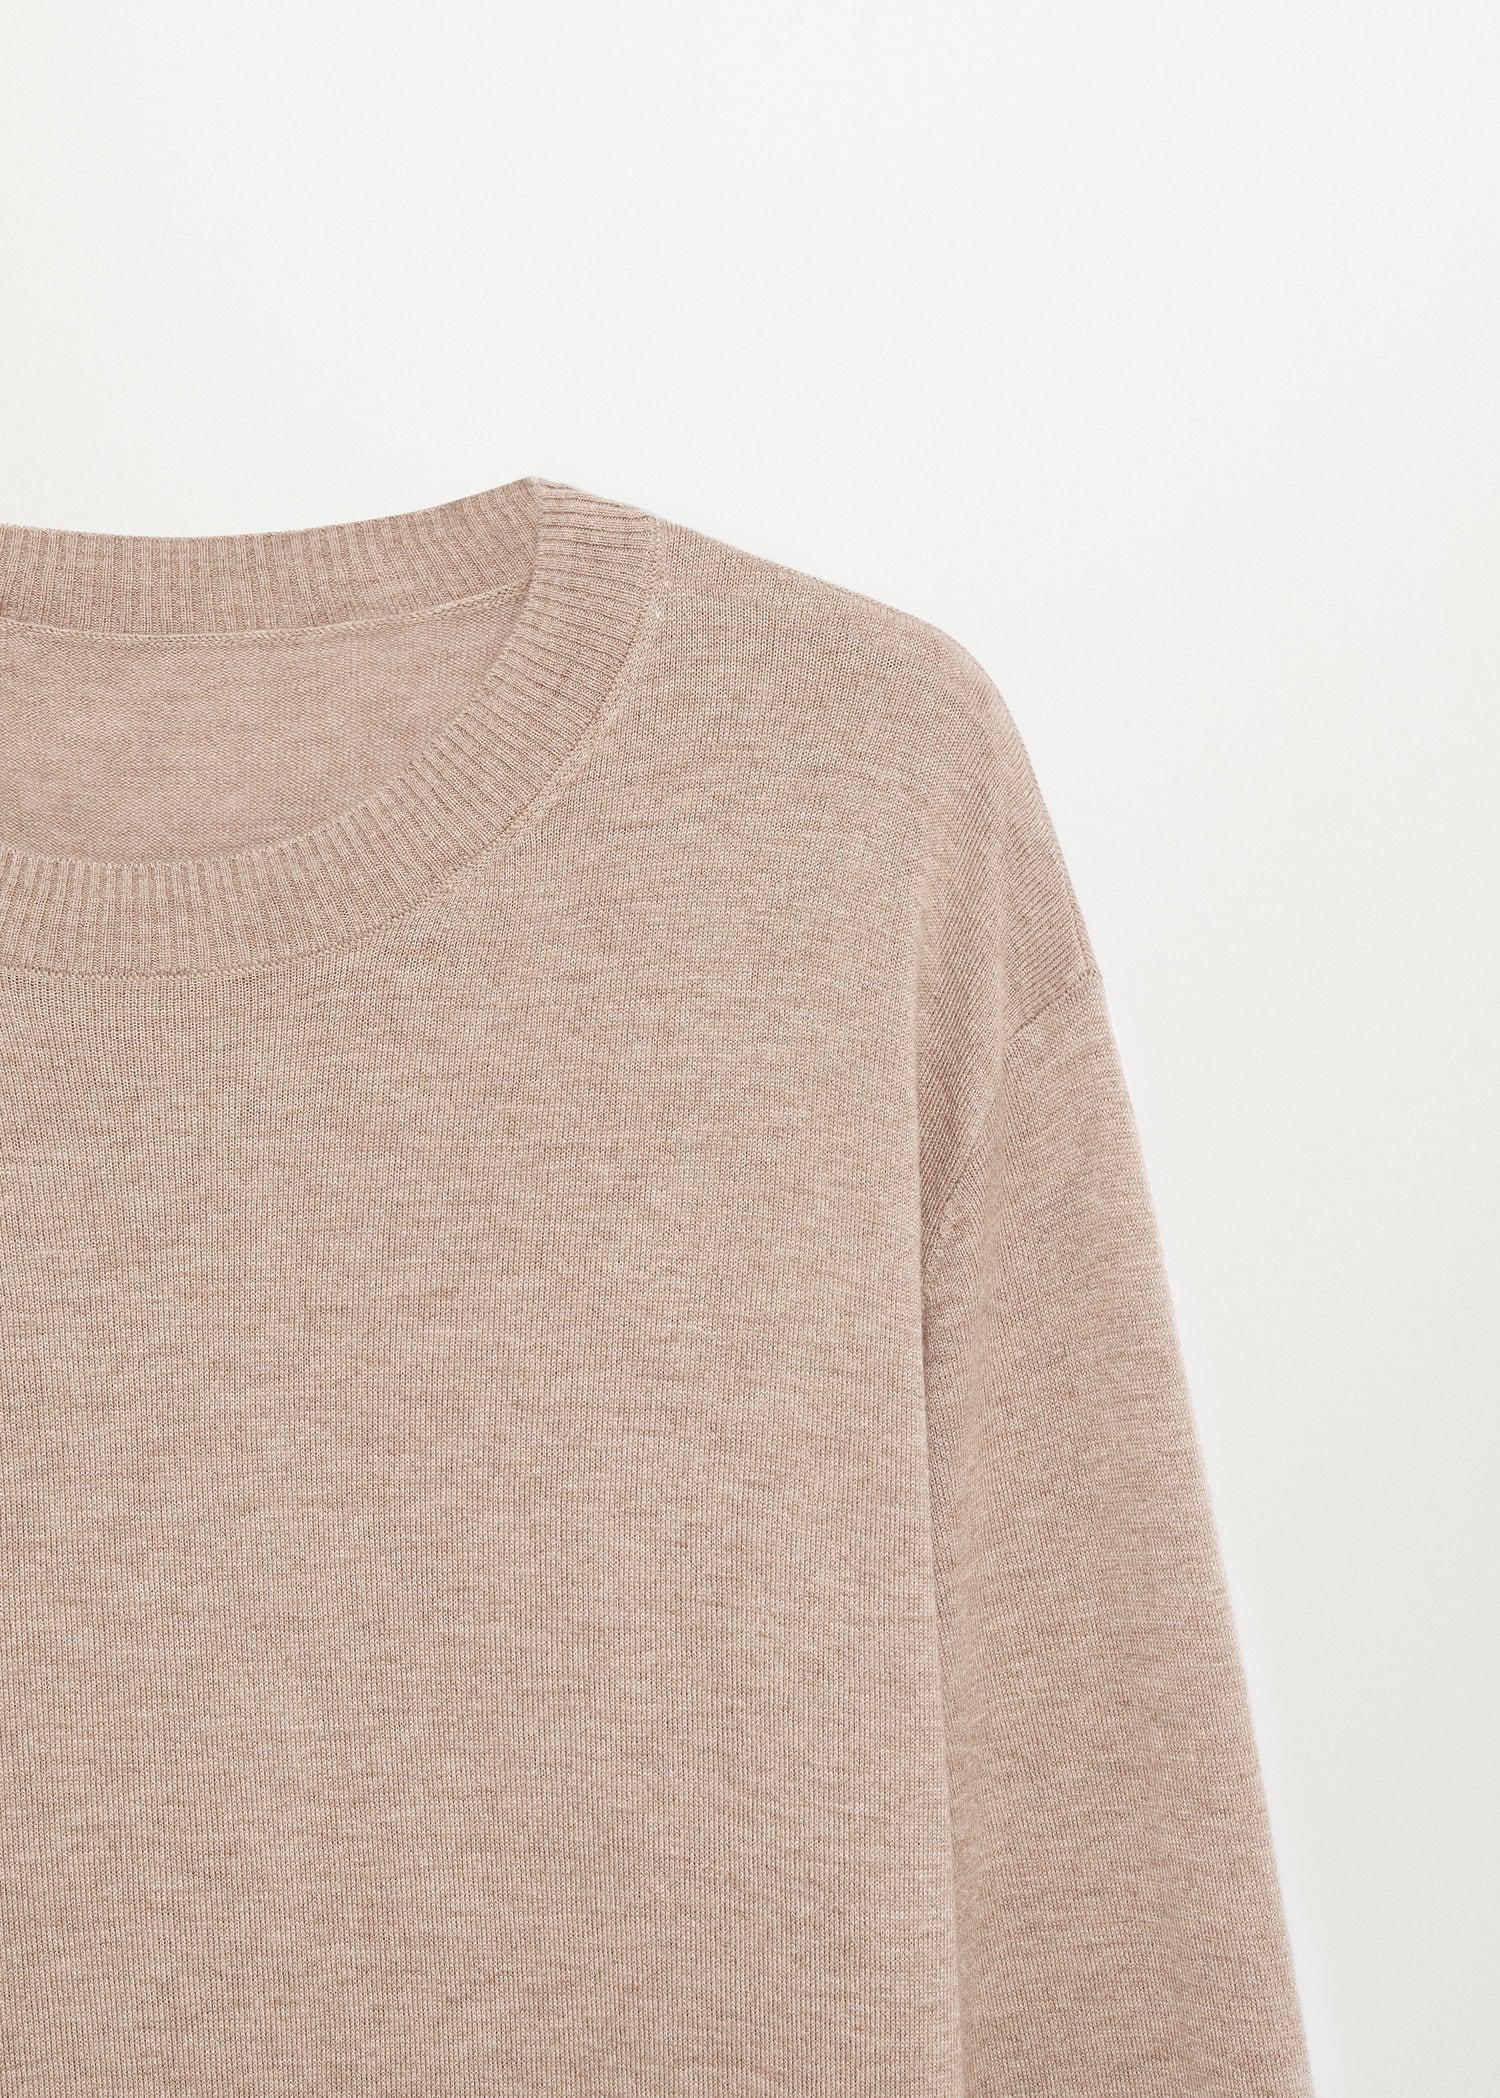 Cashmere jersey 6